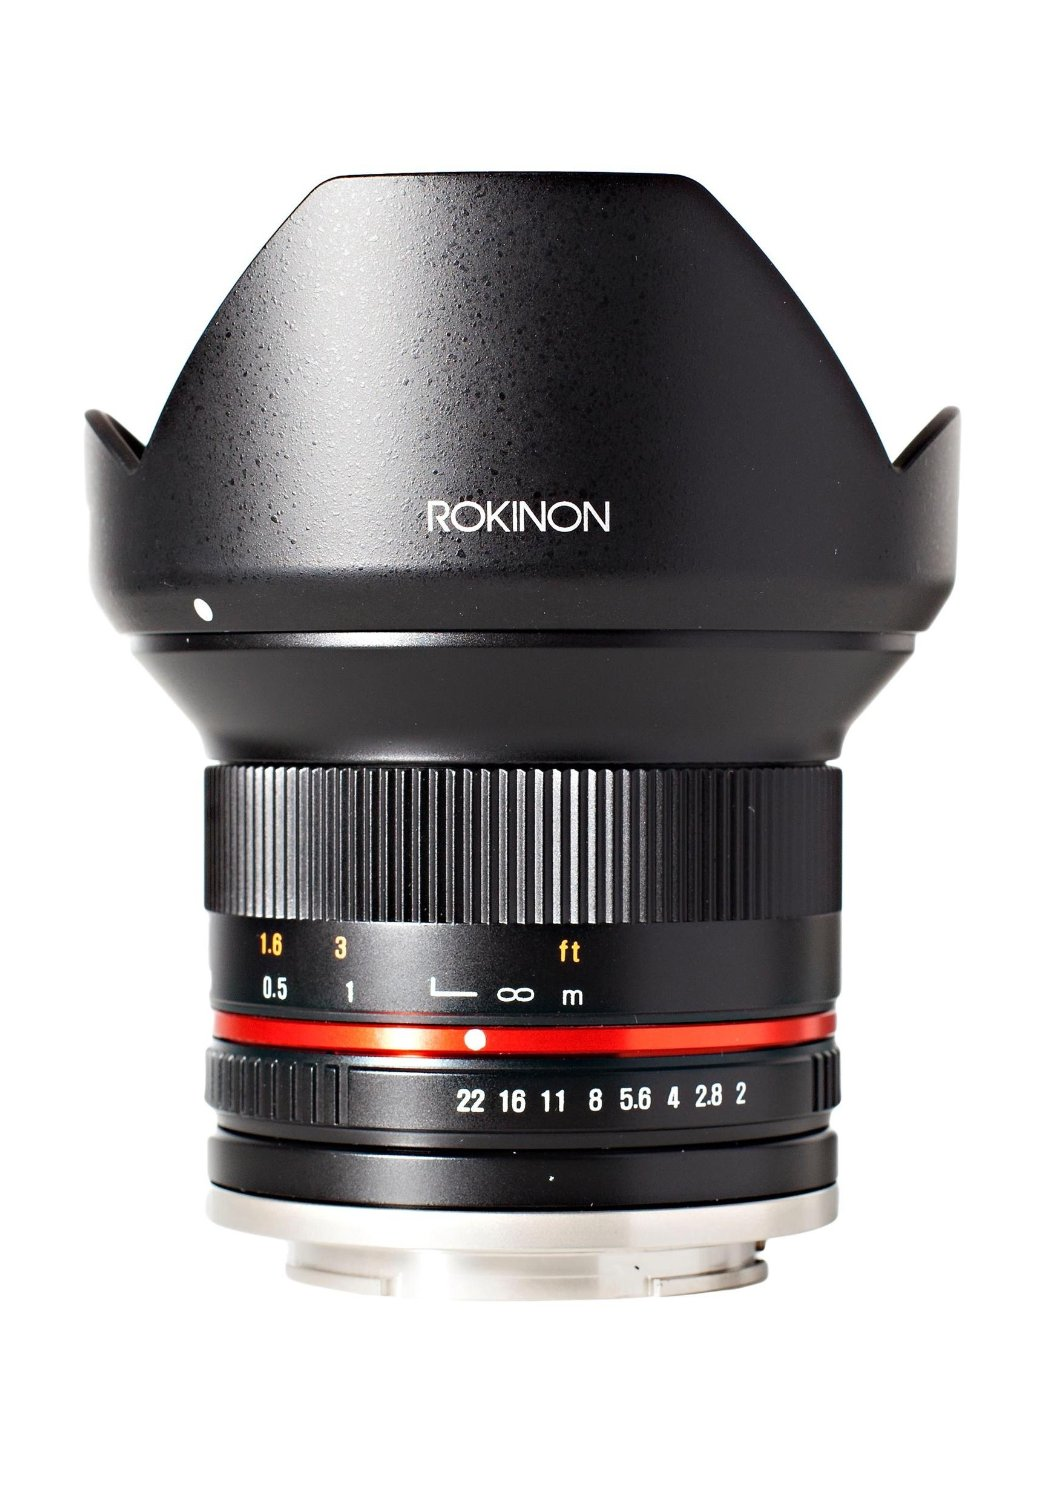 Hot Deal: Rokinon 12mm F2.0 Fuji X Mount for $249